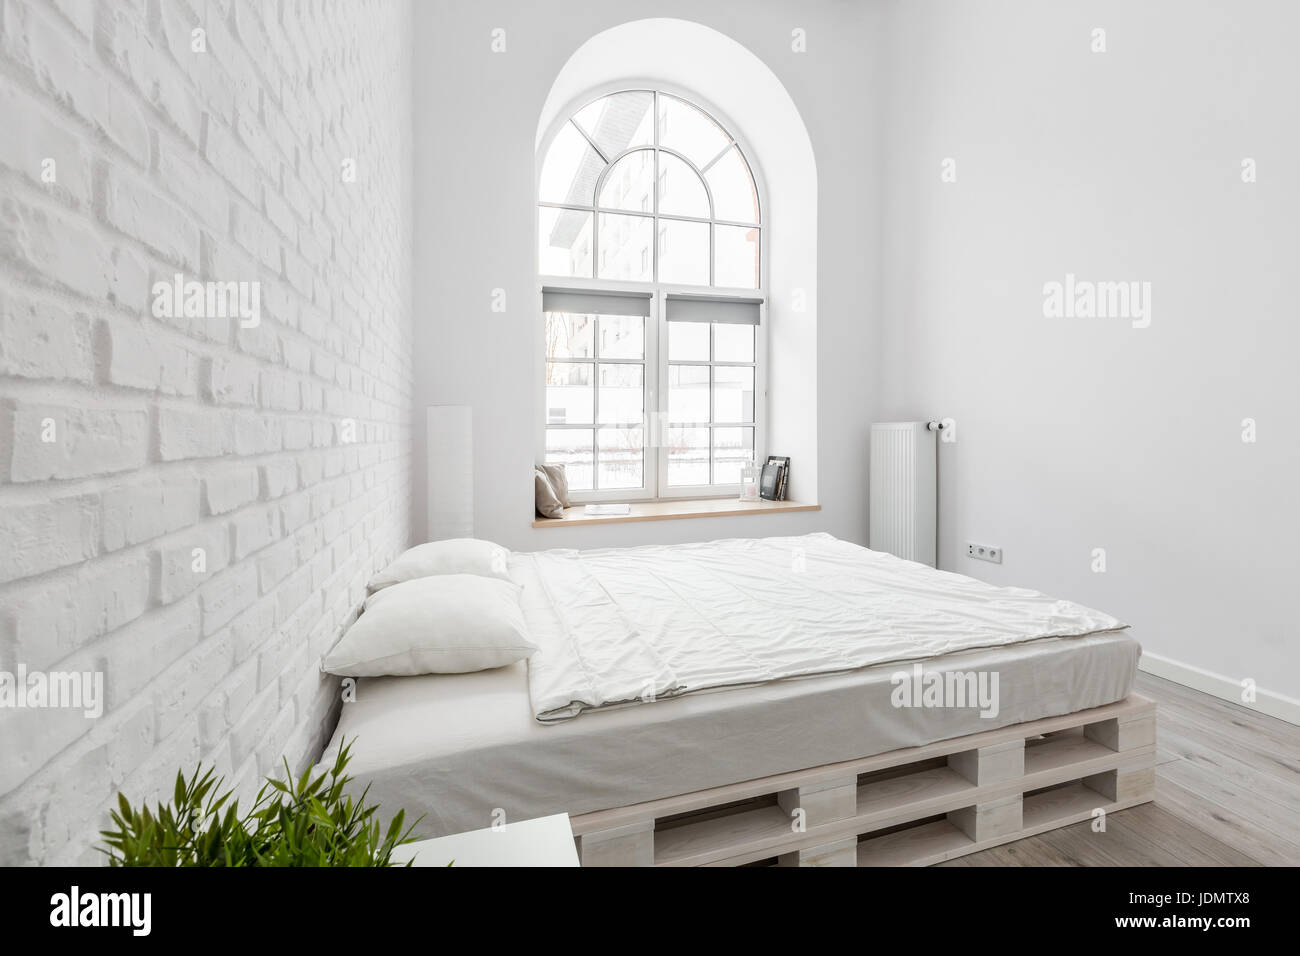 wei es schlafzimmer mit diy palette bett wand und fenster stockfoto bild 146132064 alamy. Black Bedroom Furniture Sets. Home Design Ideas